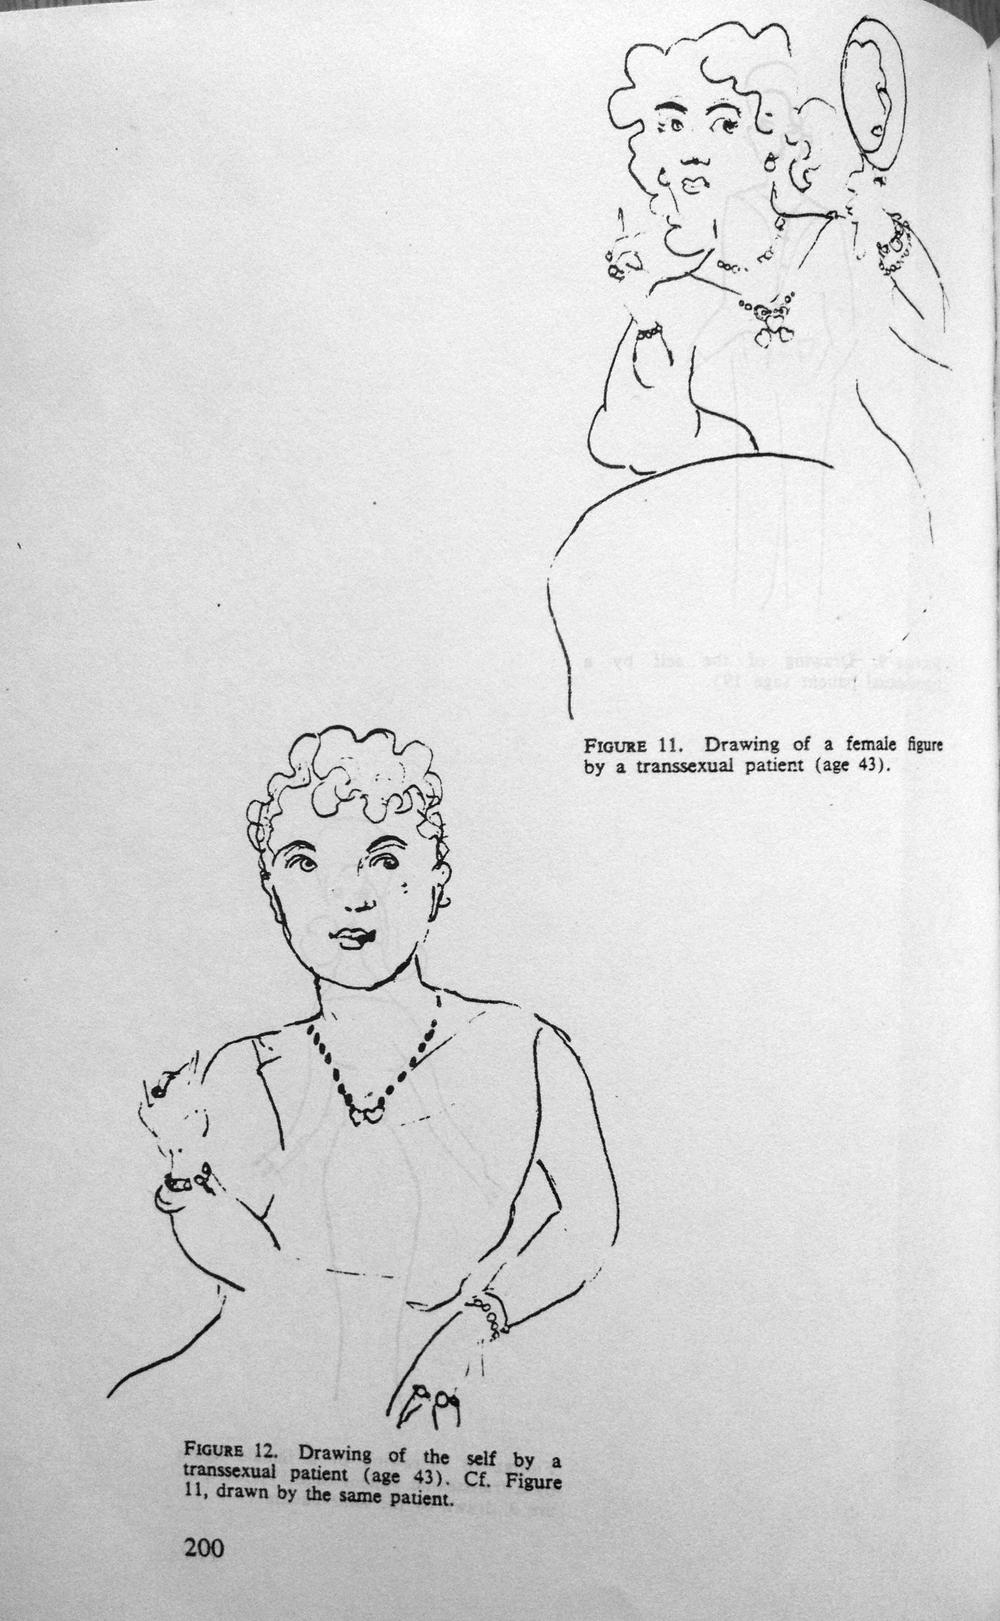 Drawing of the Self by a Transsexual patient, c. 1969